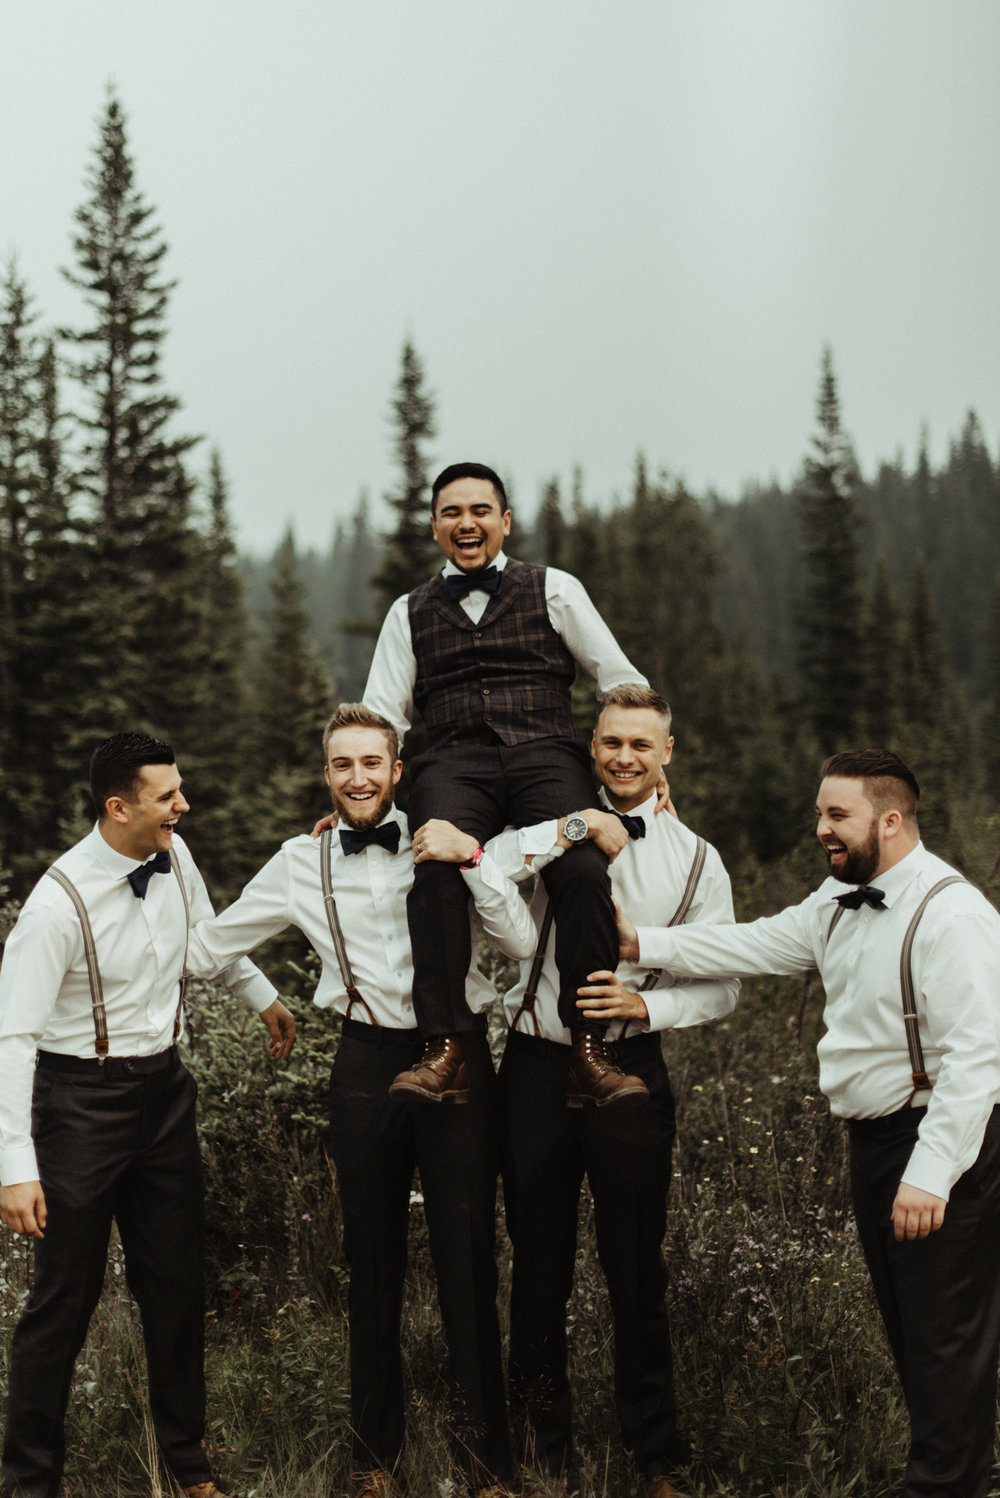 W+J - Calgary Wedding Photographer - Ghost Lake - Rocky Mountain Wedding-68.jpg